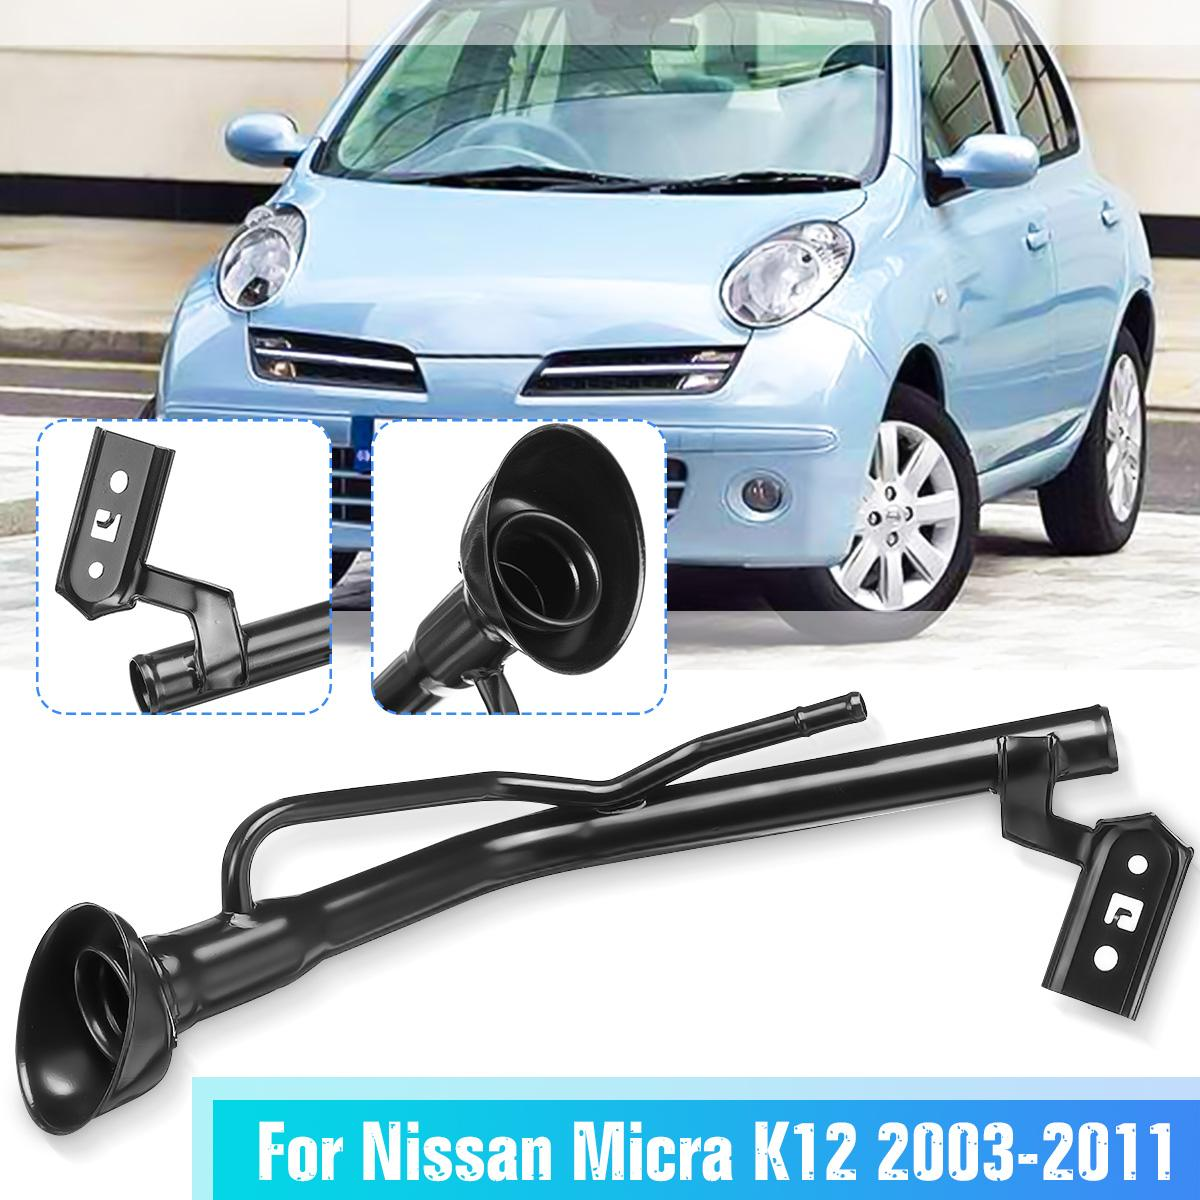 Car Fuel Tank Neck Pipe Intake Passage Petrol Fuel Tank Filler 17221-BC400 17221-BC40A for Nissan Micra K12 2003-2011